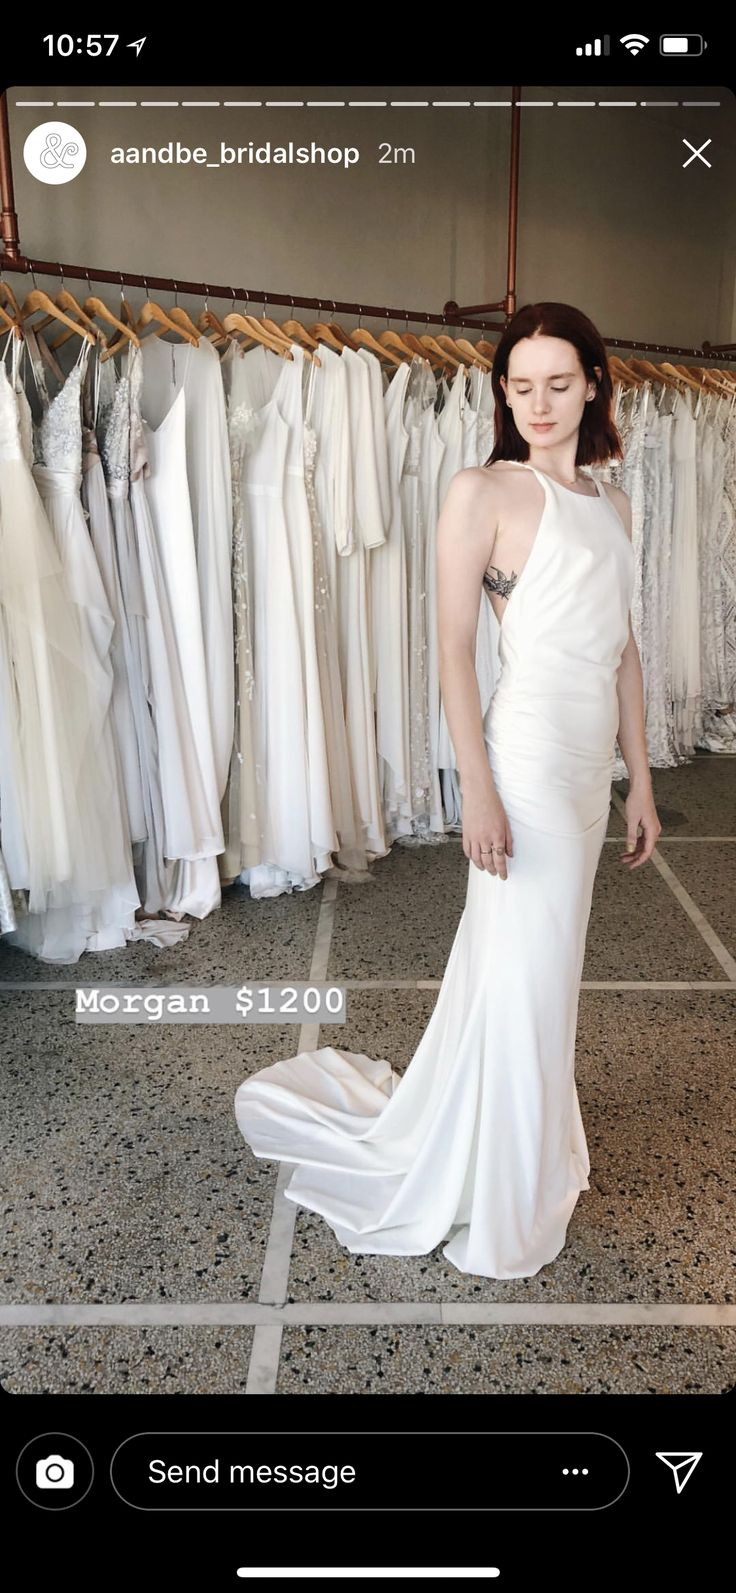 Pin by Brooke Pryor on Say Yes to the Dress Yes to the